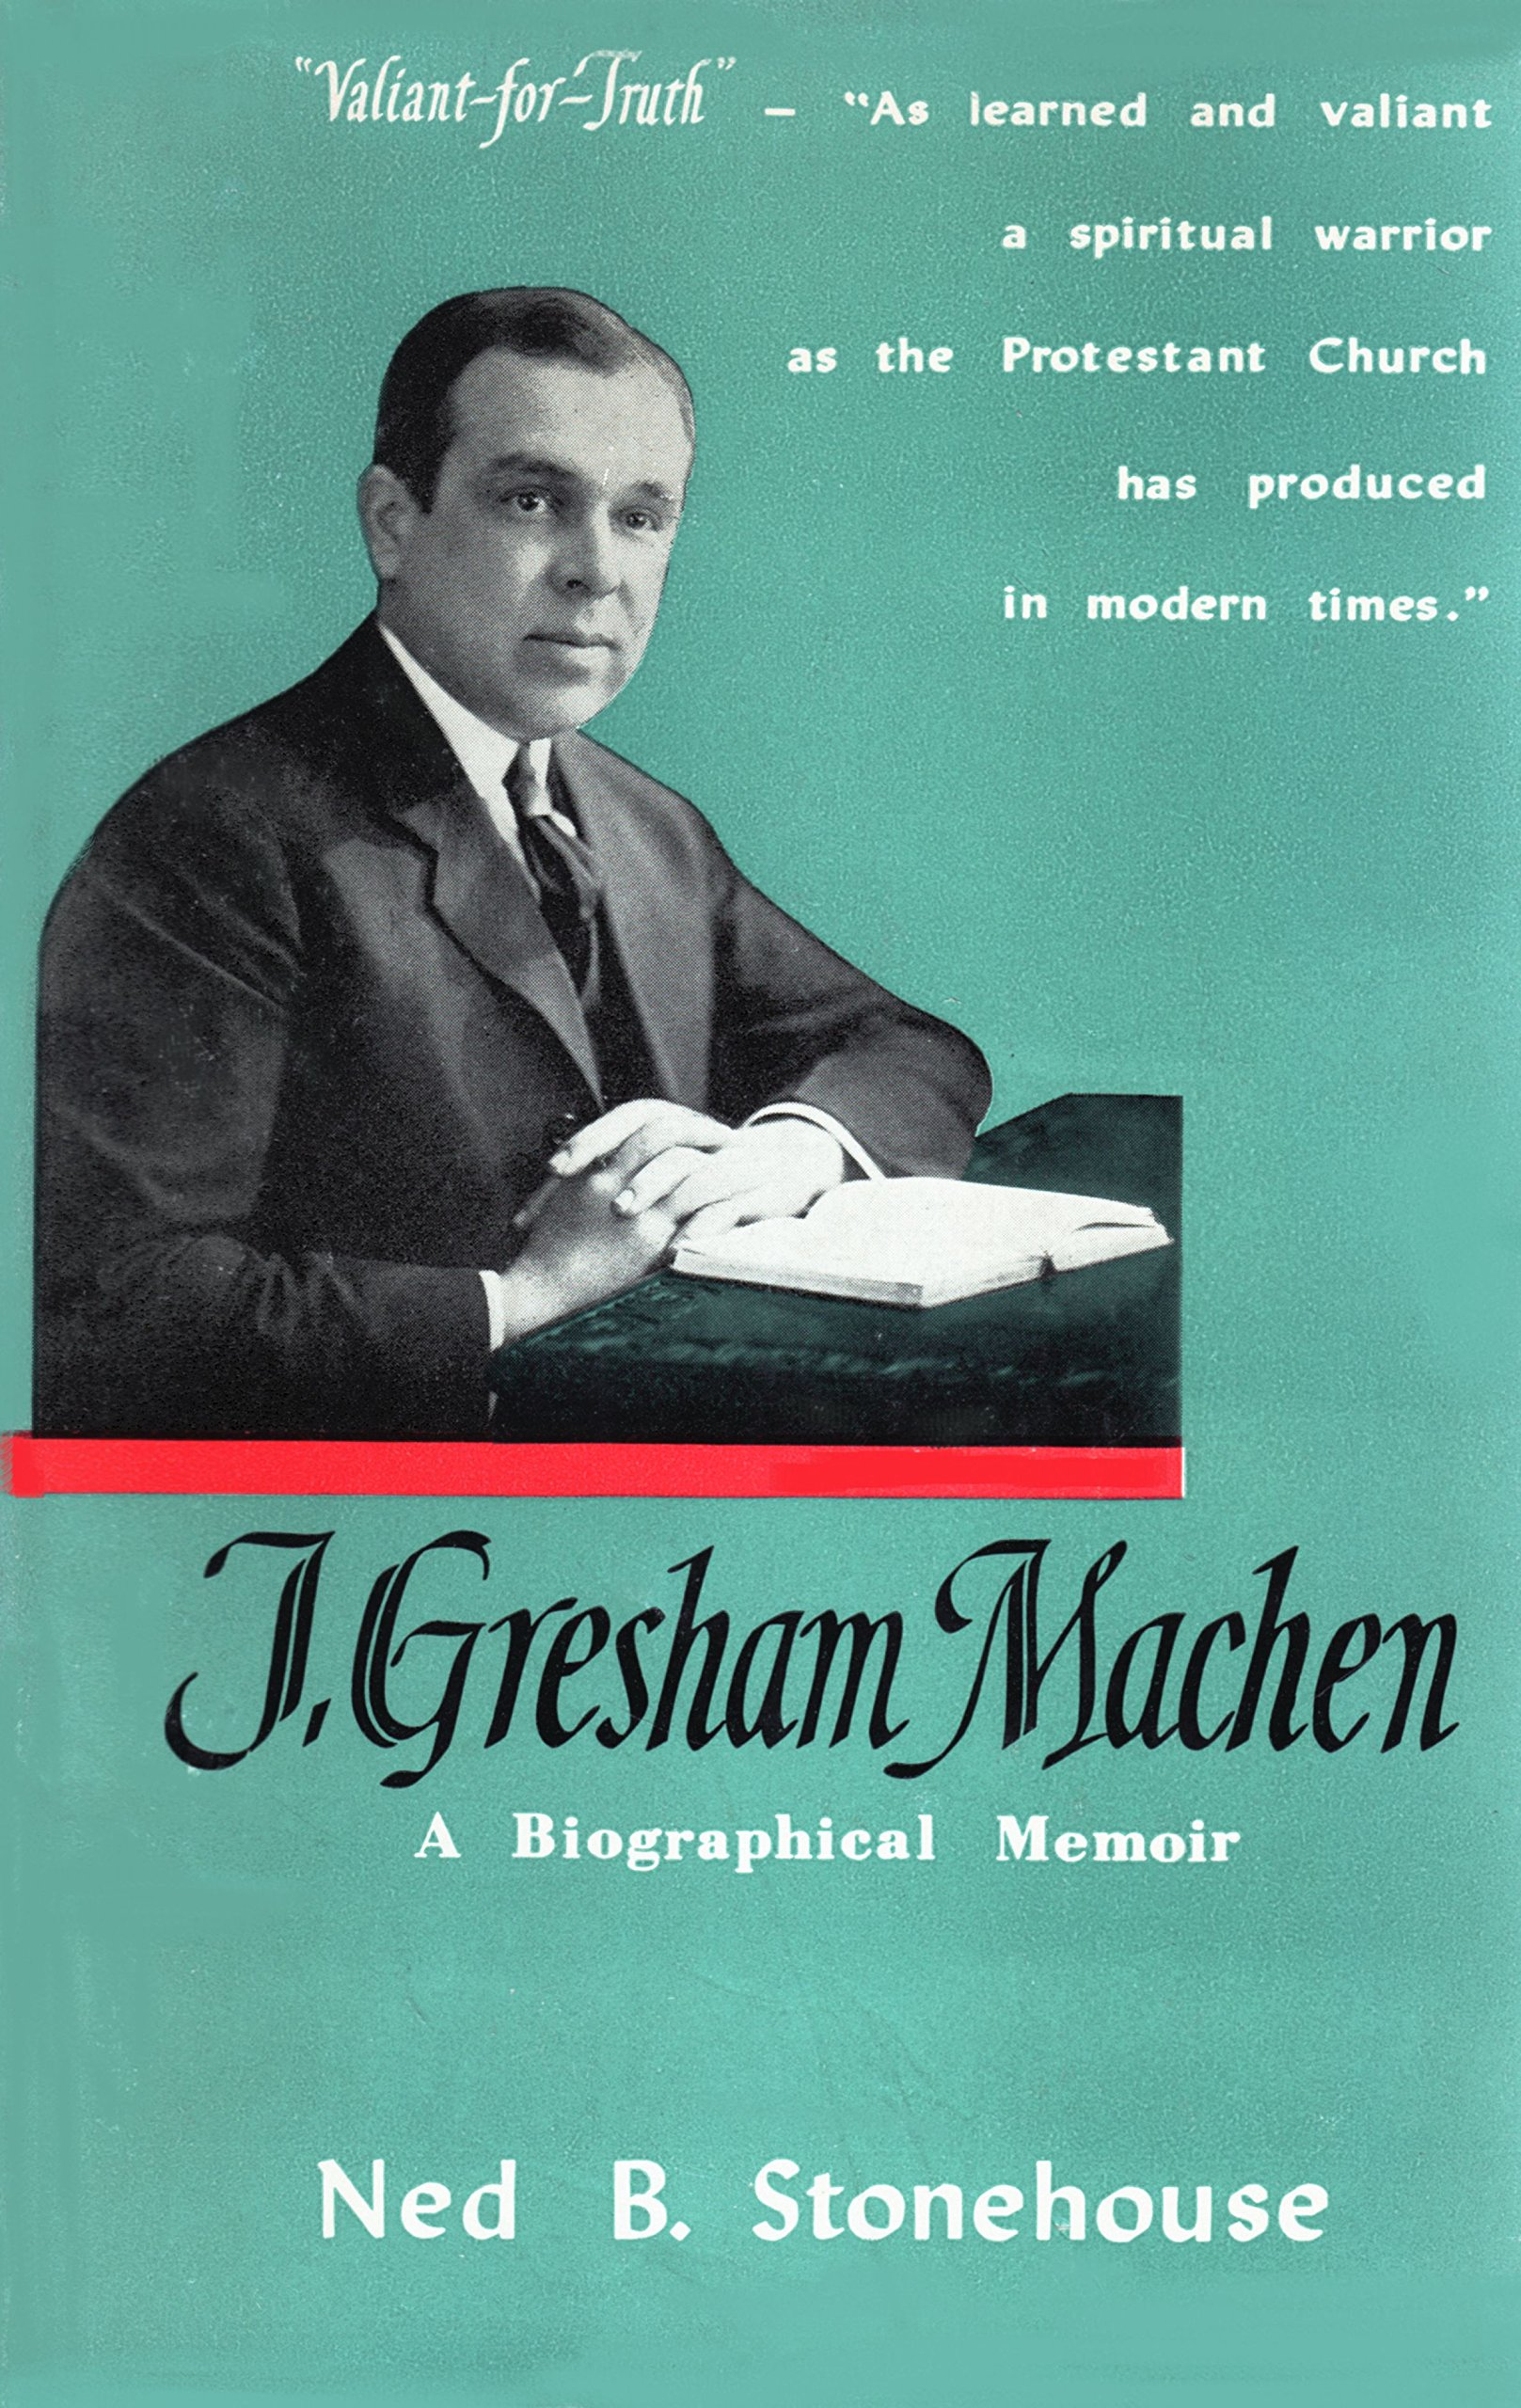 J. Gresham Machen: A Biographical Memoir: Ned Bernard Stonehouse ...